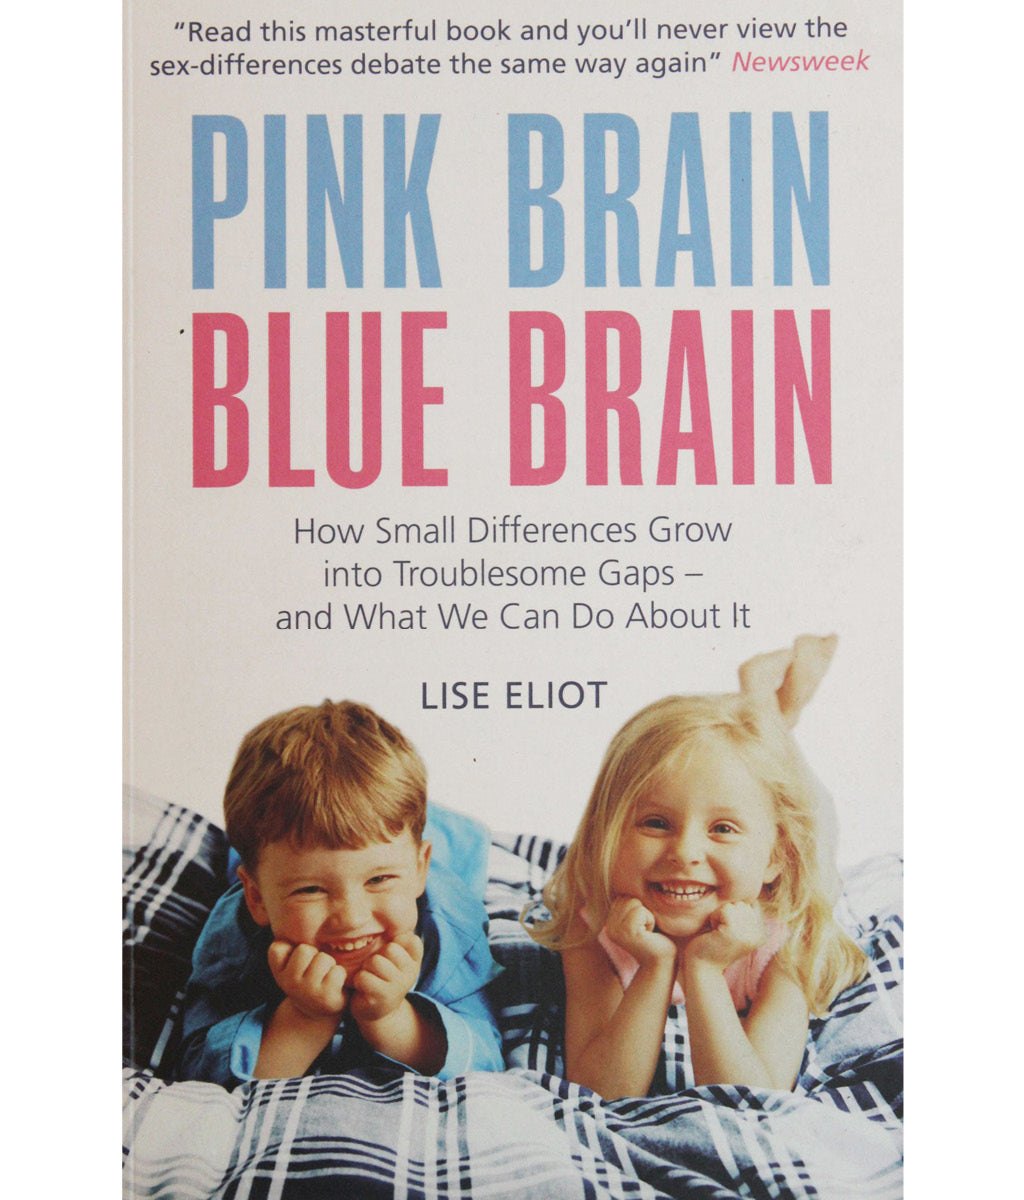 Pink Brain Blue Brain by Lise Eliot